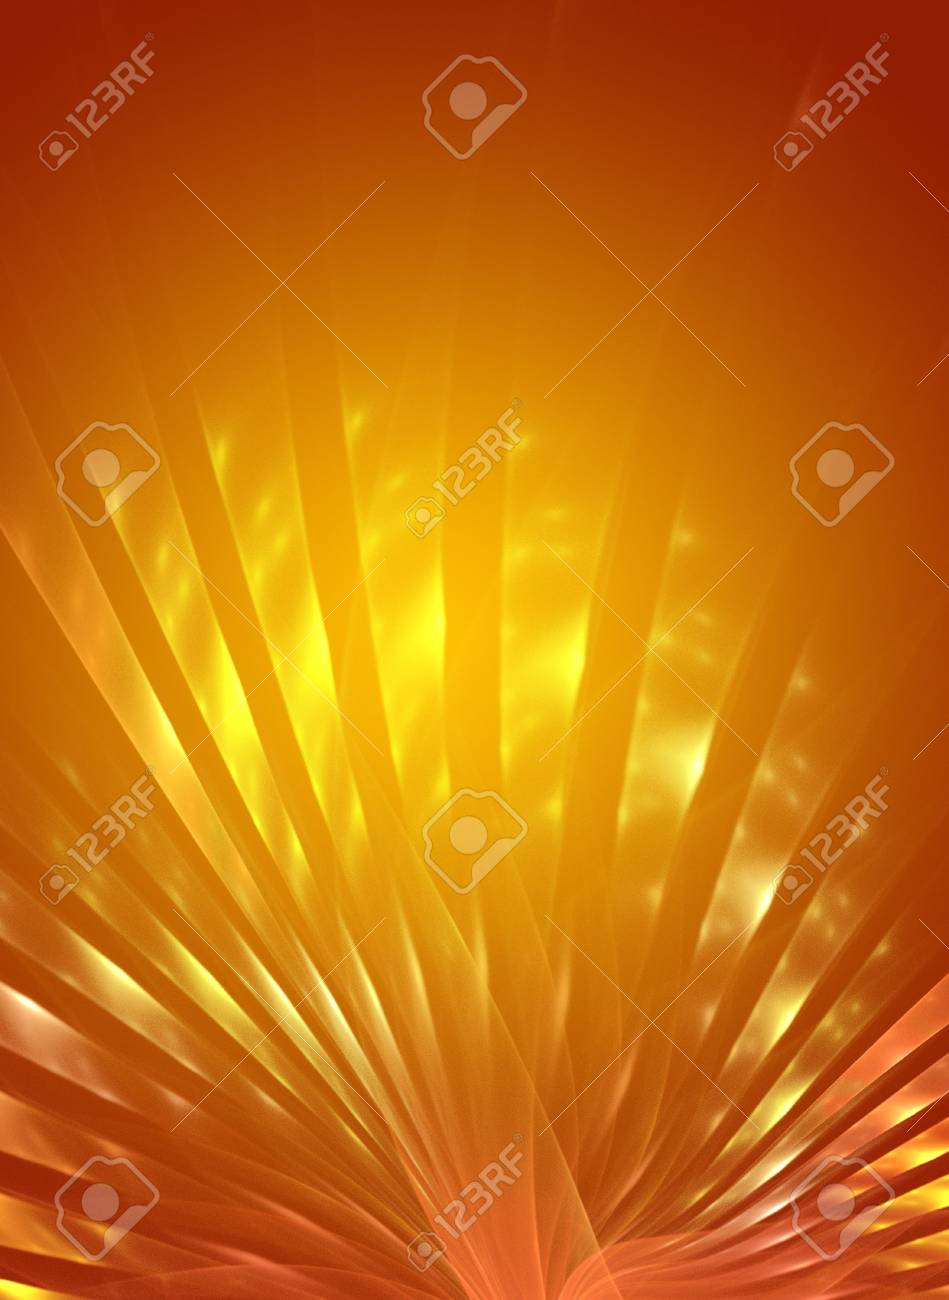 Modern design. Beautiful abstract background with nice colors. Stock Photo - 5555426